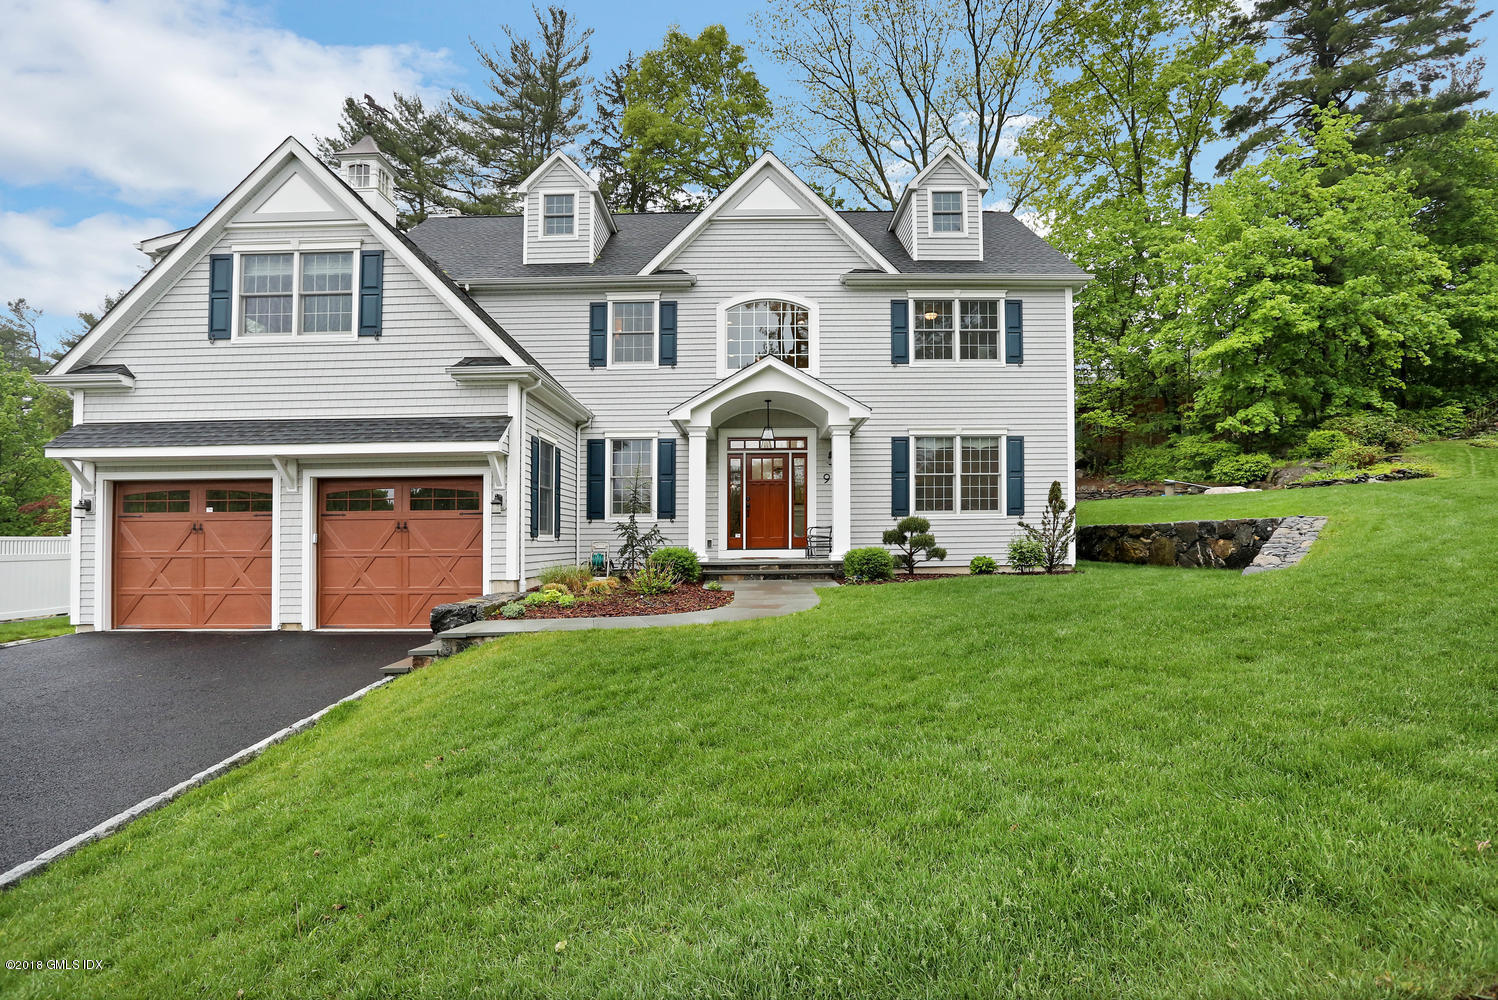 9A Benders Drive,Greenwich,Connecticut 06831,5 Bedrooms Bedrooms,3 BathroomsBathrooms,Single family,Benders,103339